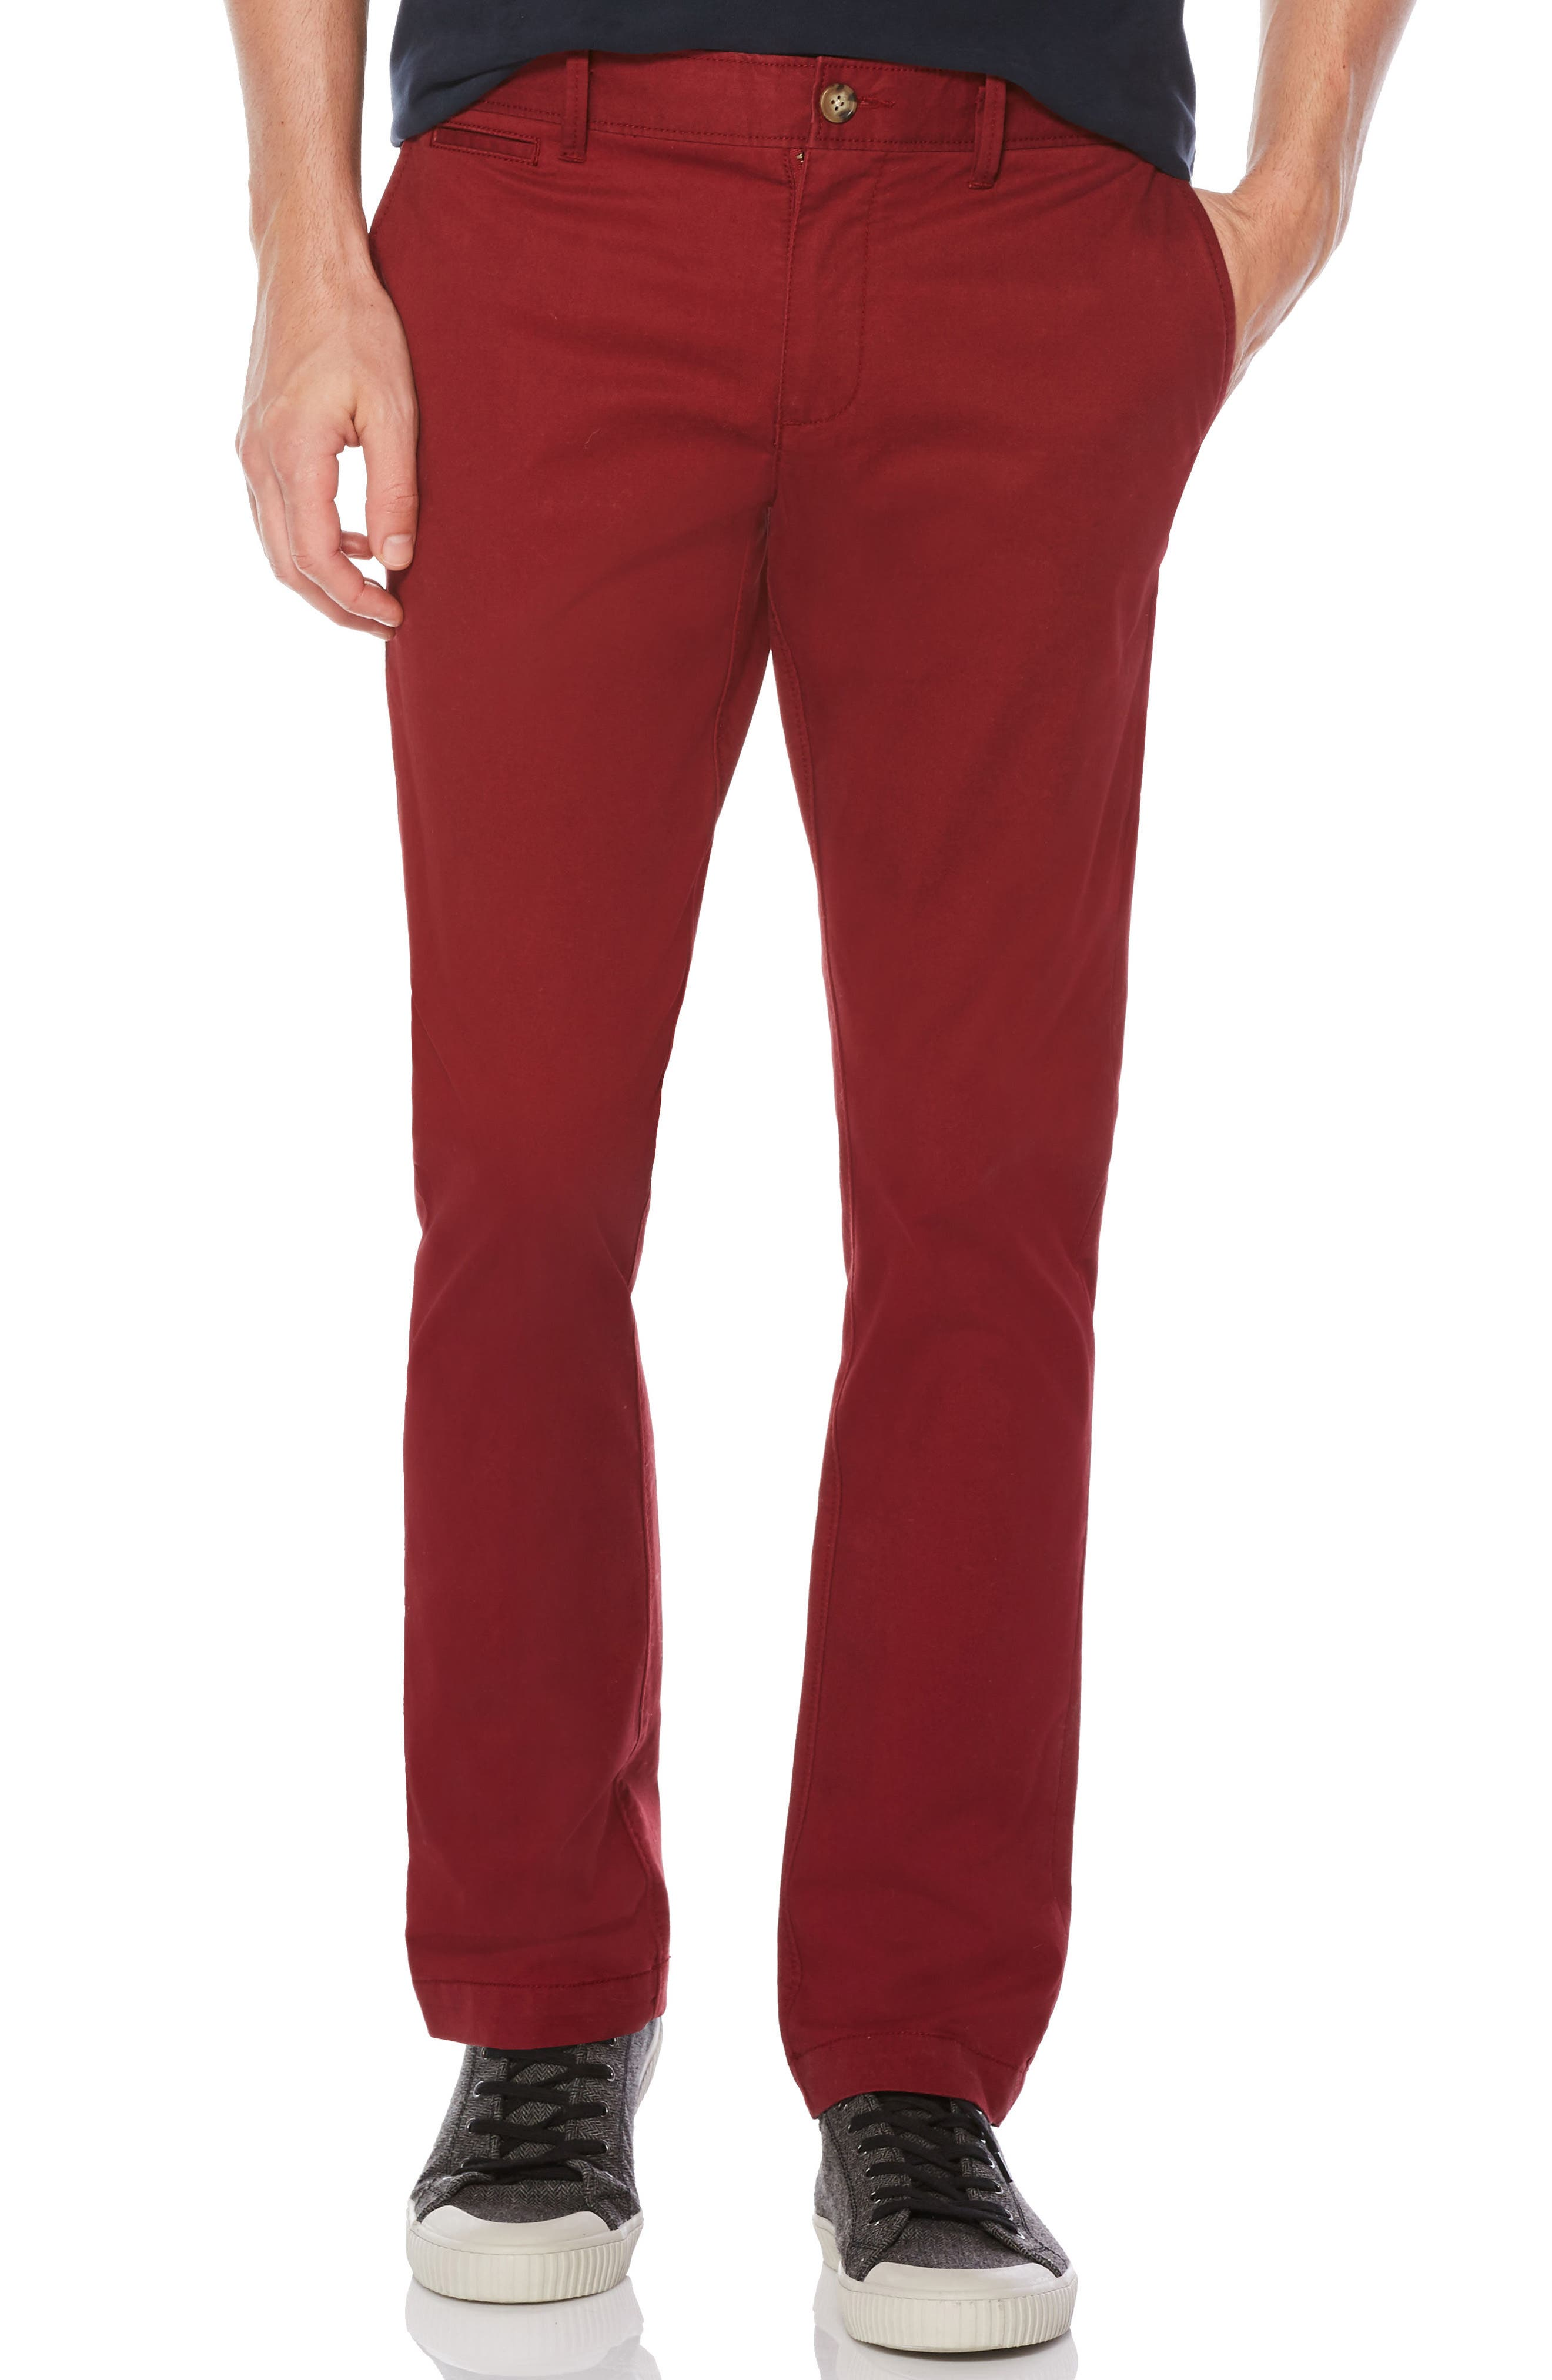 P55 Slim Fit Stretch Chinos,                         Main,                         color,